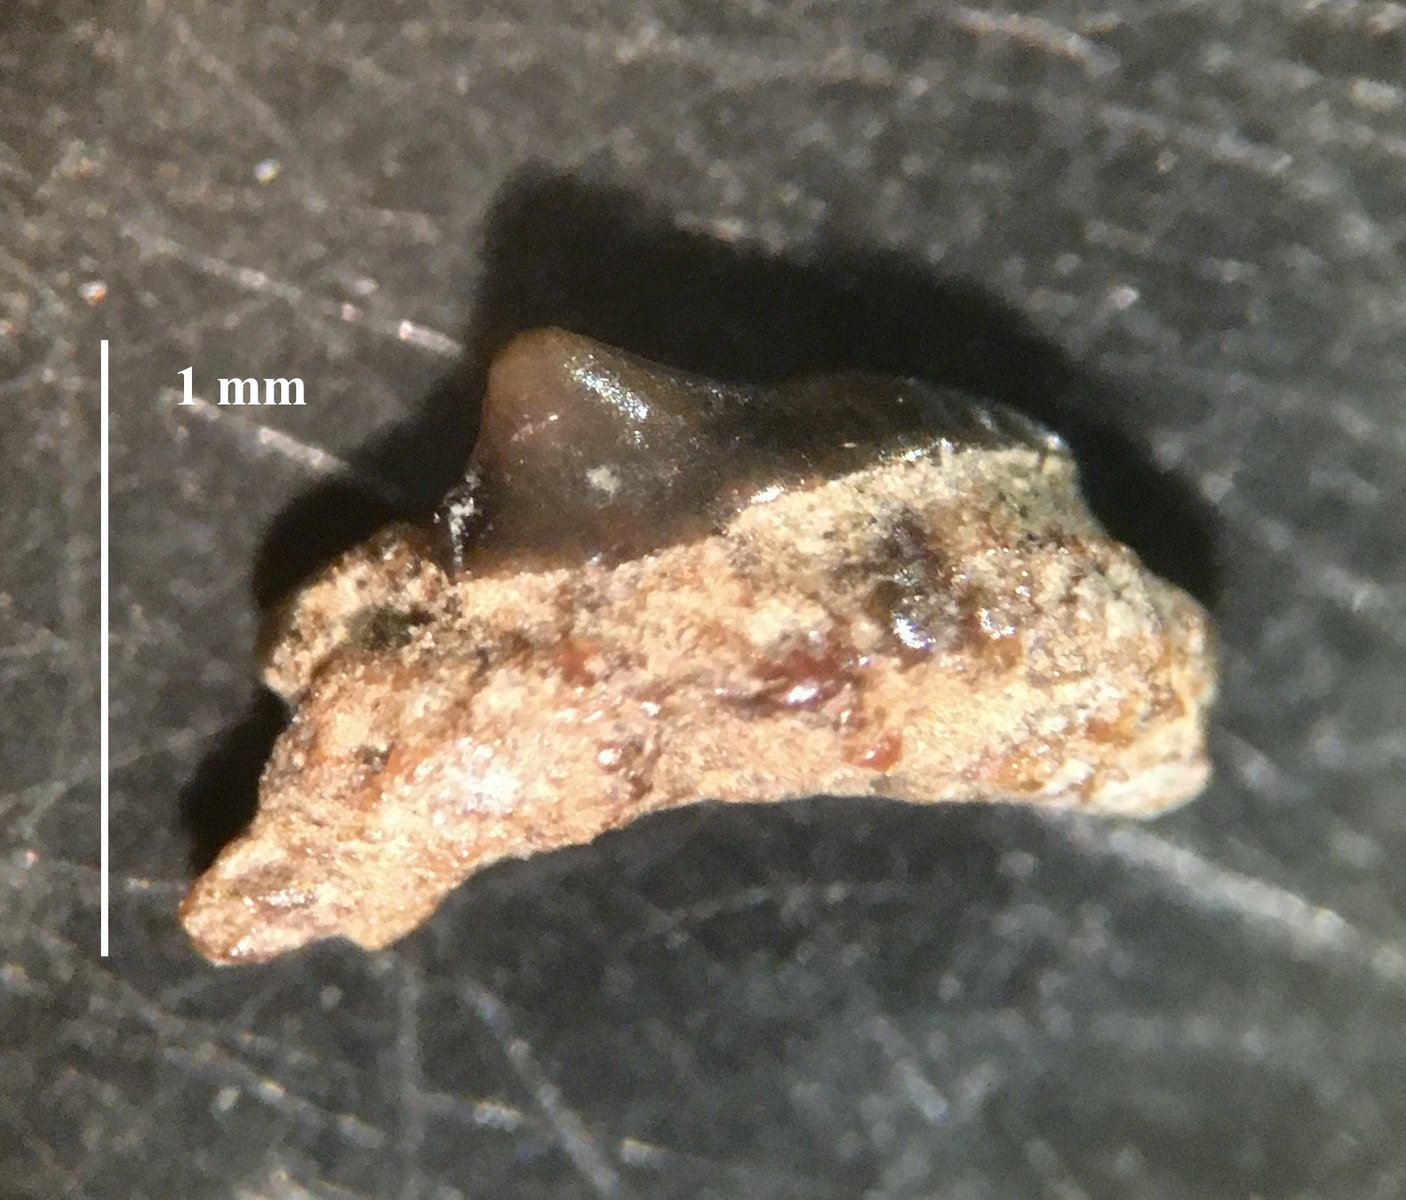 Posterior tooth